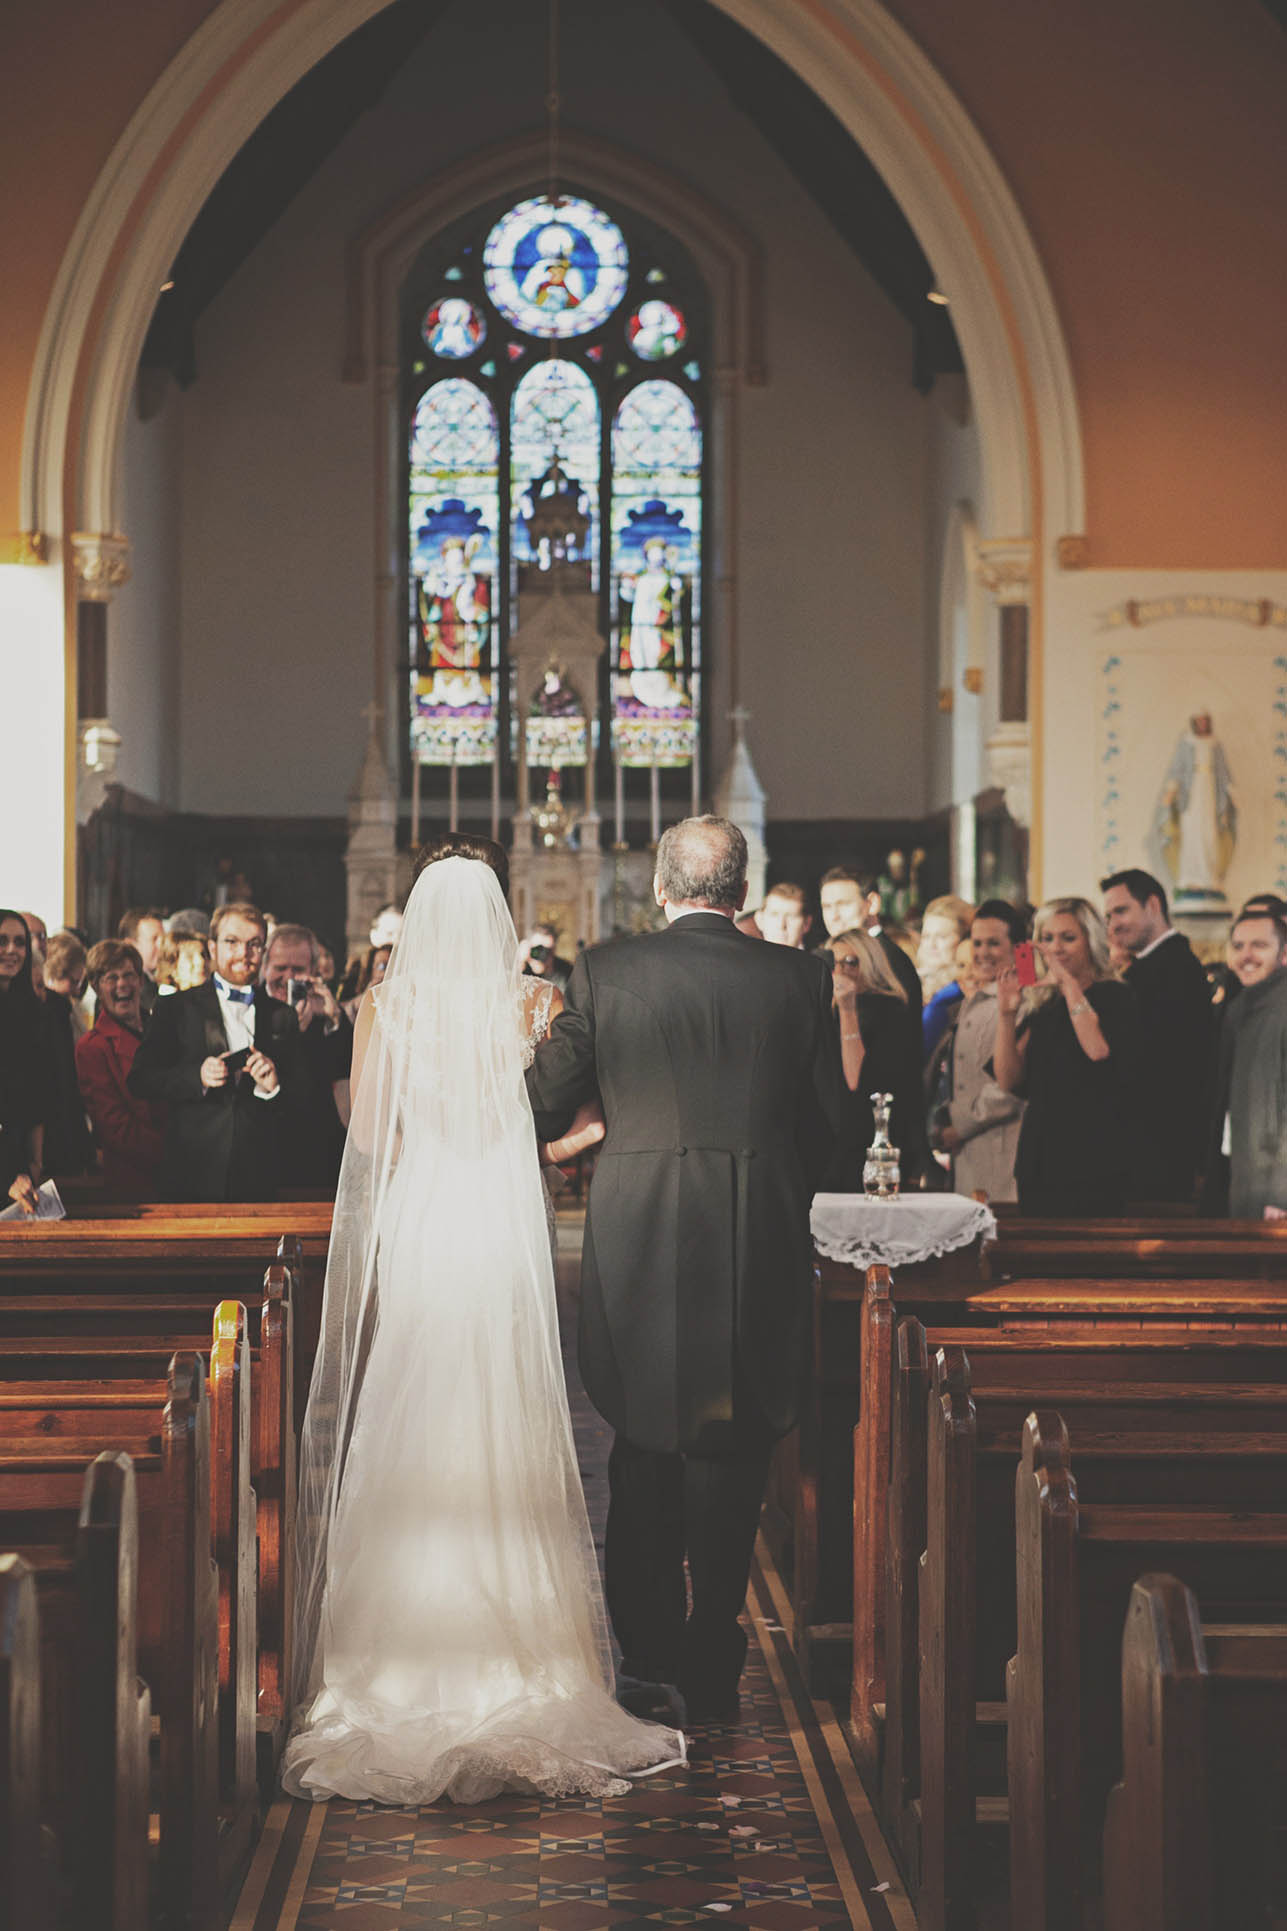 Aughrim Church wedding, Here comes the bride 2014